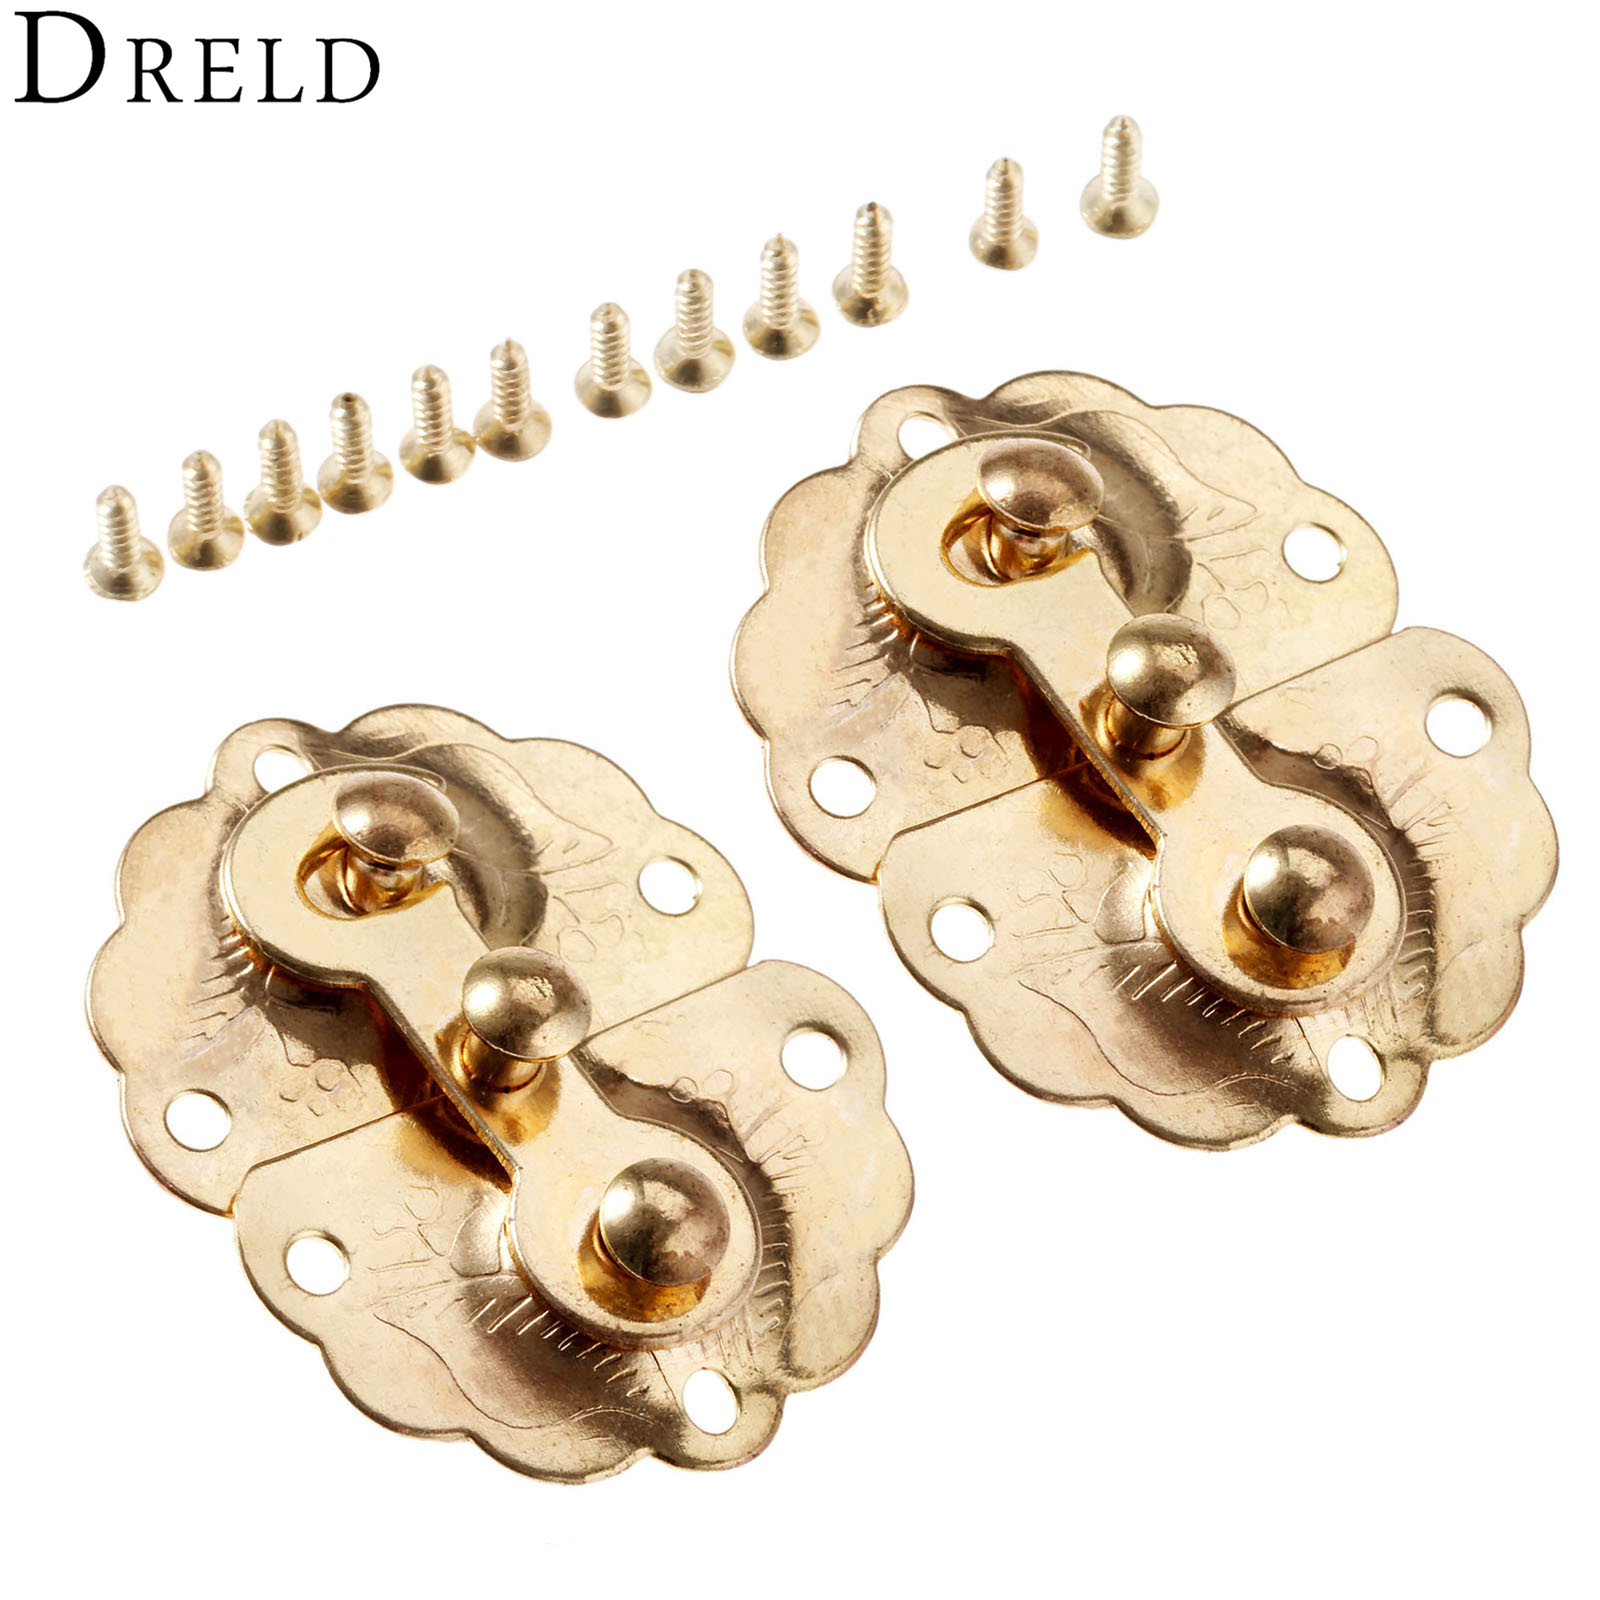 DRELD 2Pcs Gold Iron Latches Catches 35*45mm Hasps Clasp Buckles Small Lock For Jewelry Wood Box Suitcase Furniture Hardware